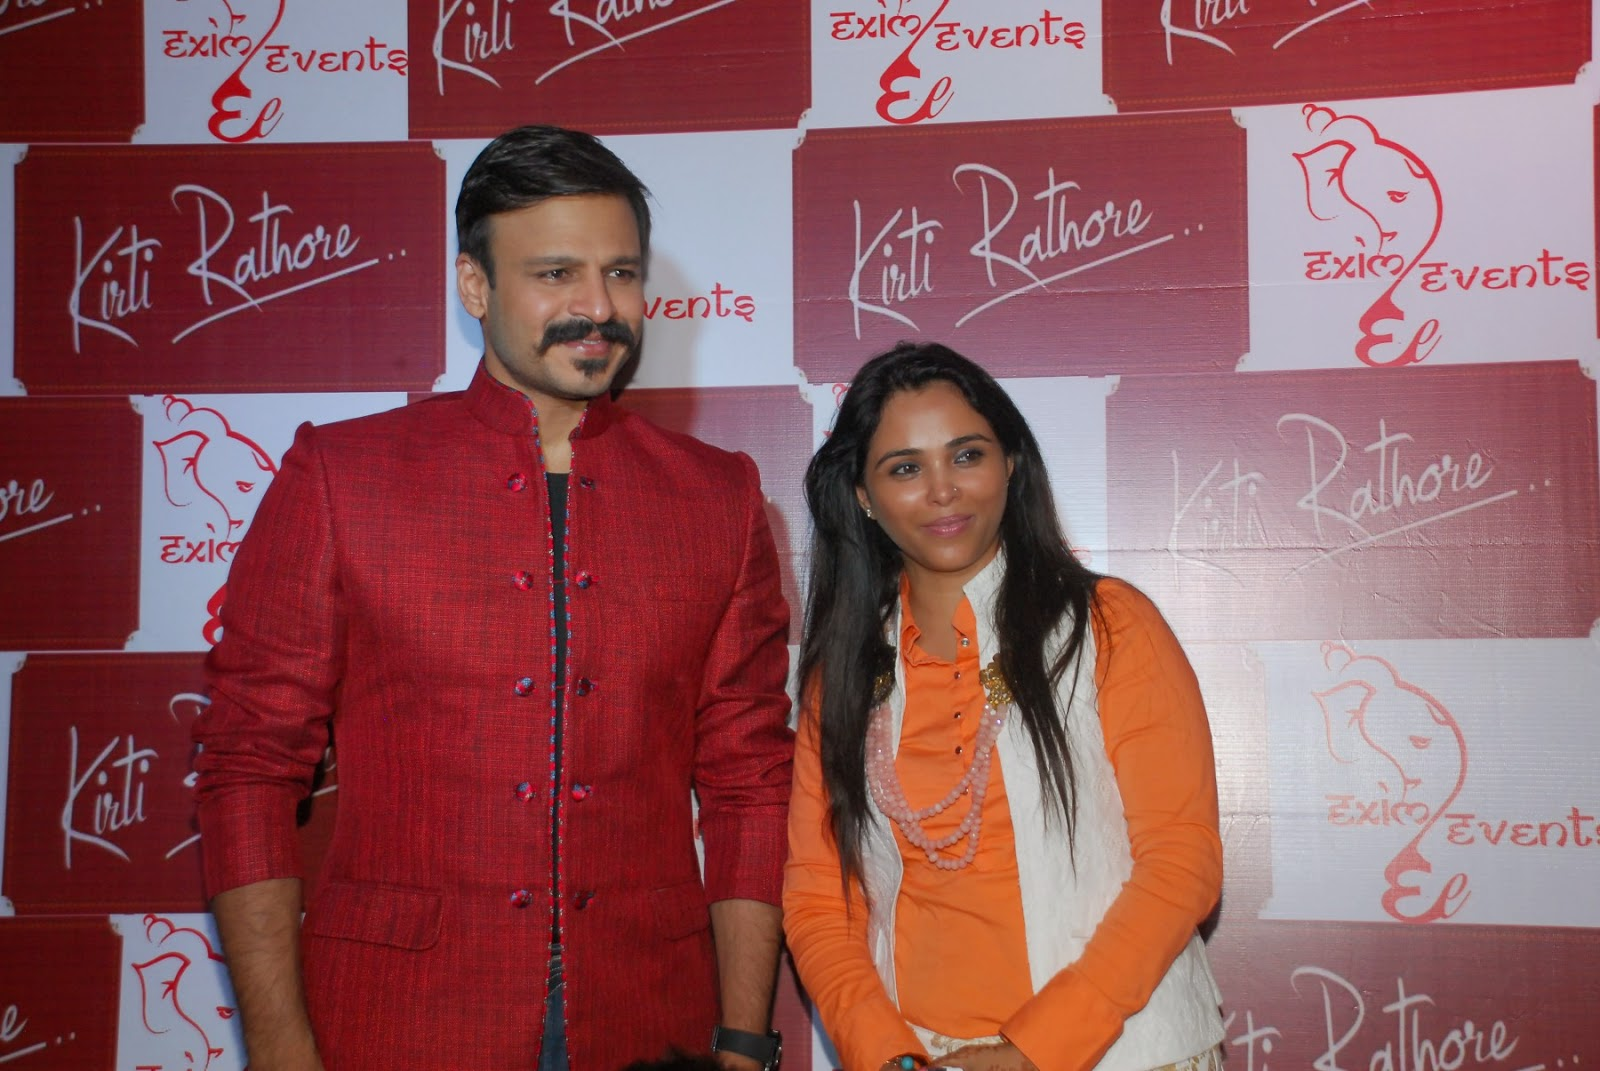 Vivek Oberoi at Launch of Designer Kirti Rathore's Menswear Studio